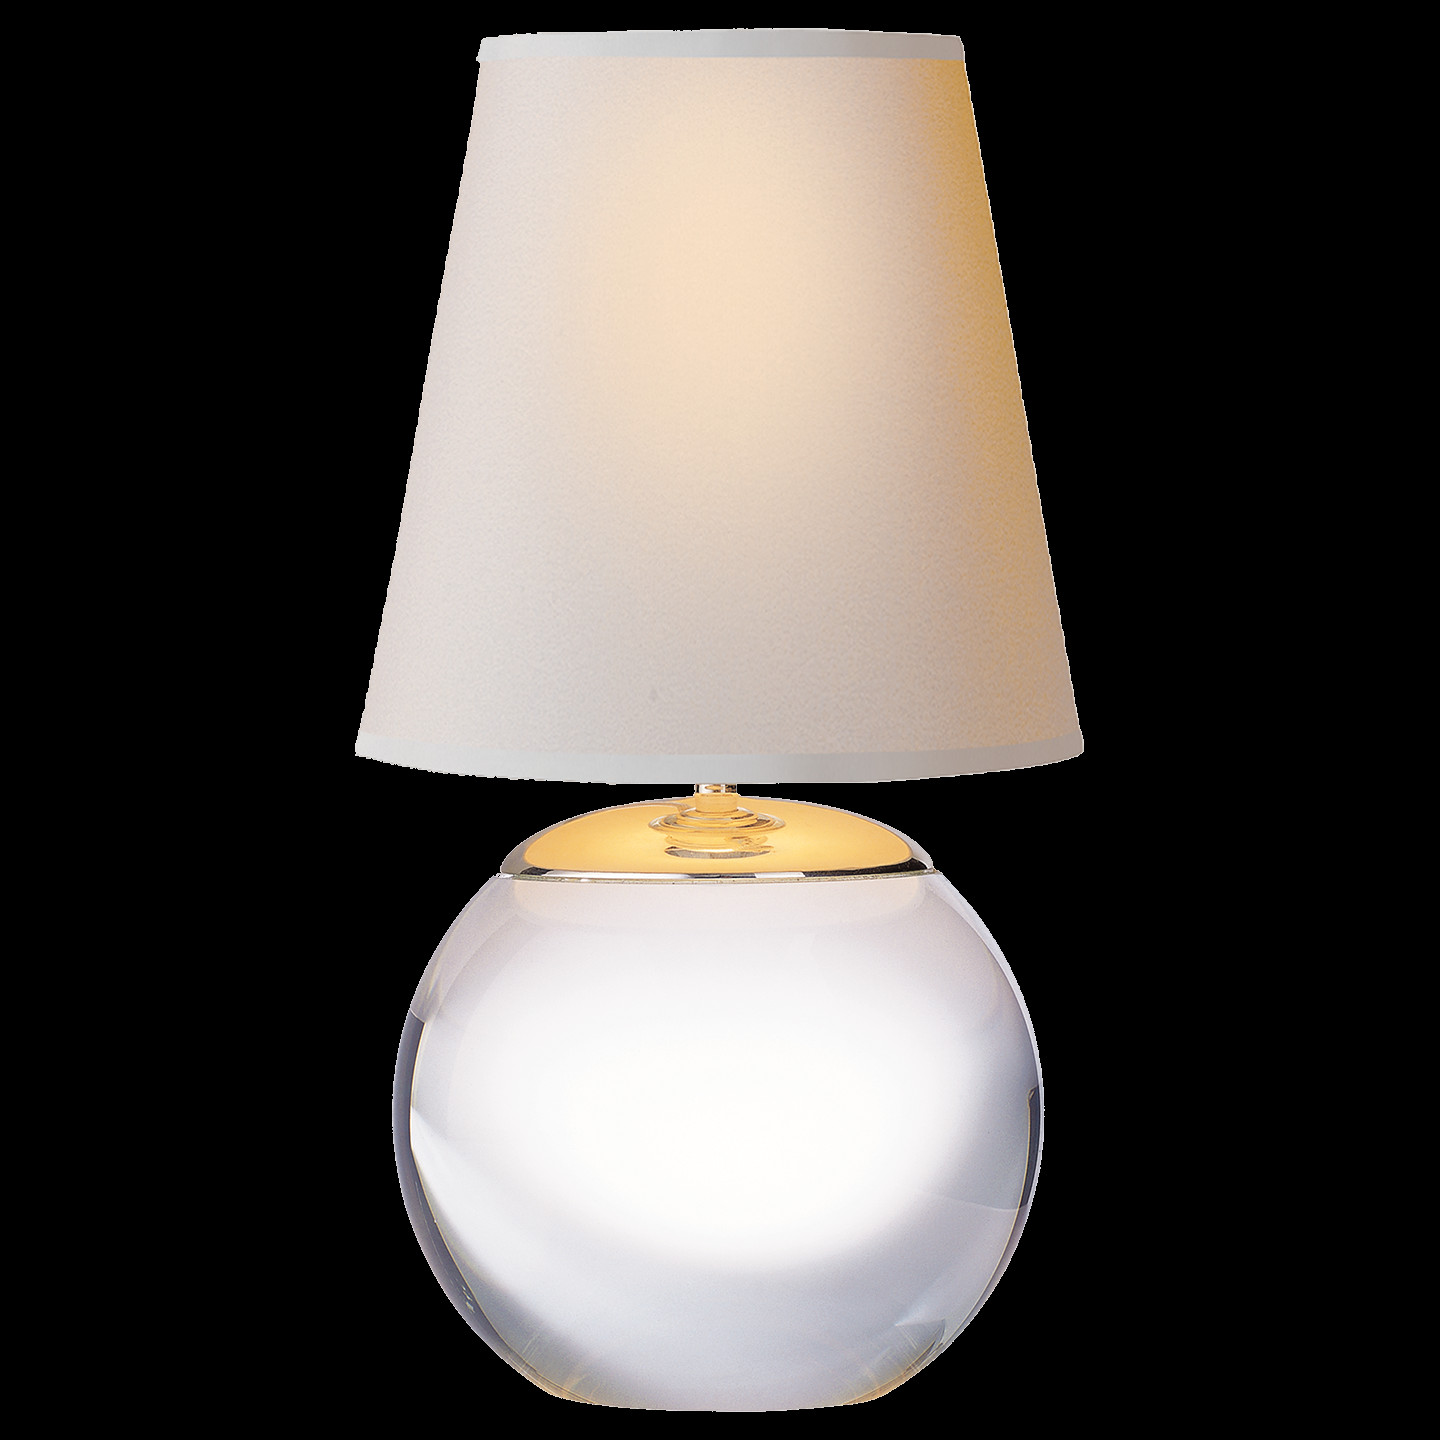 Cool Lamps for Bedroom New Kind Of Small Crystal with Natural Paper Shade